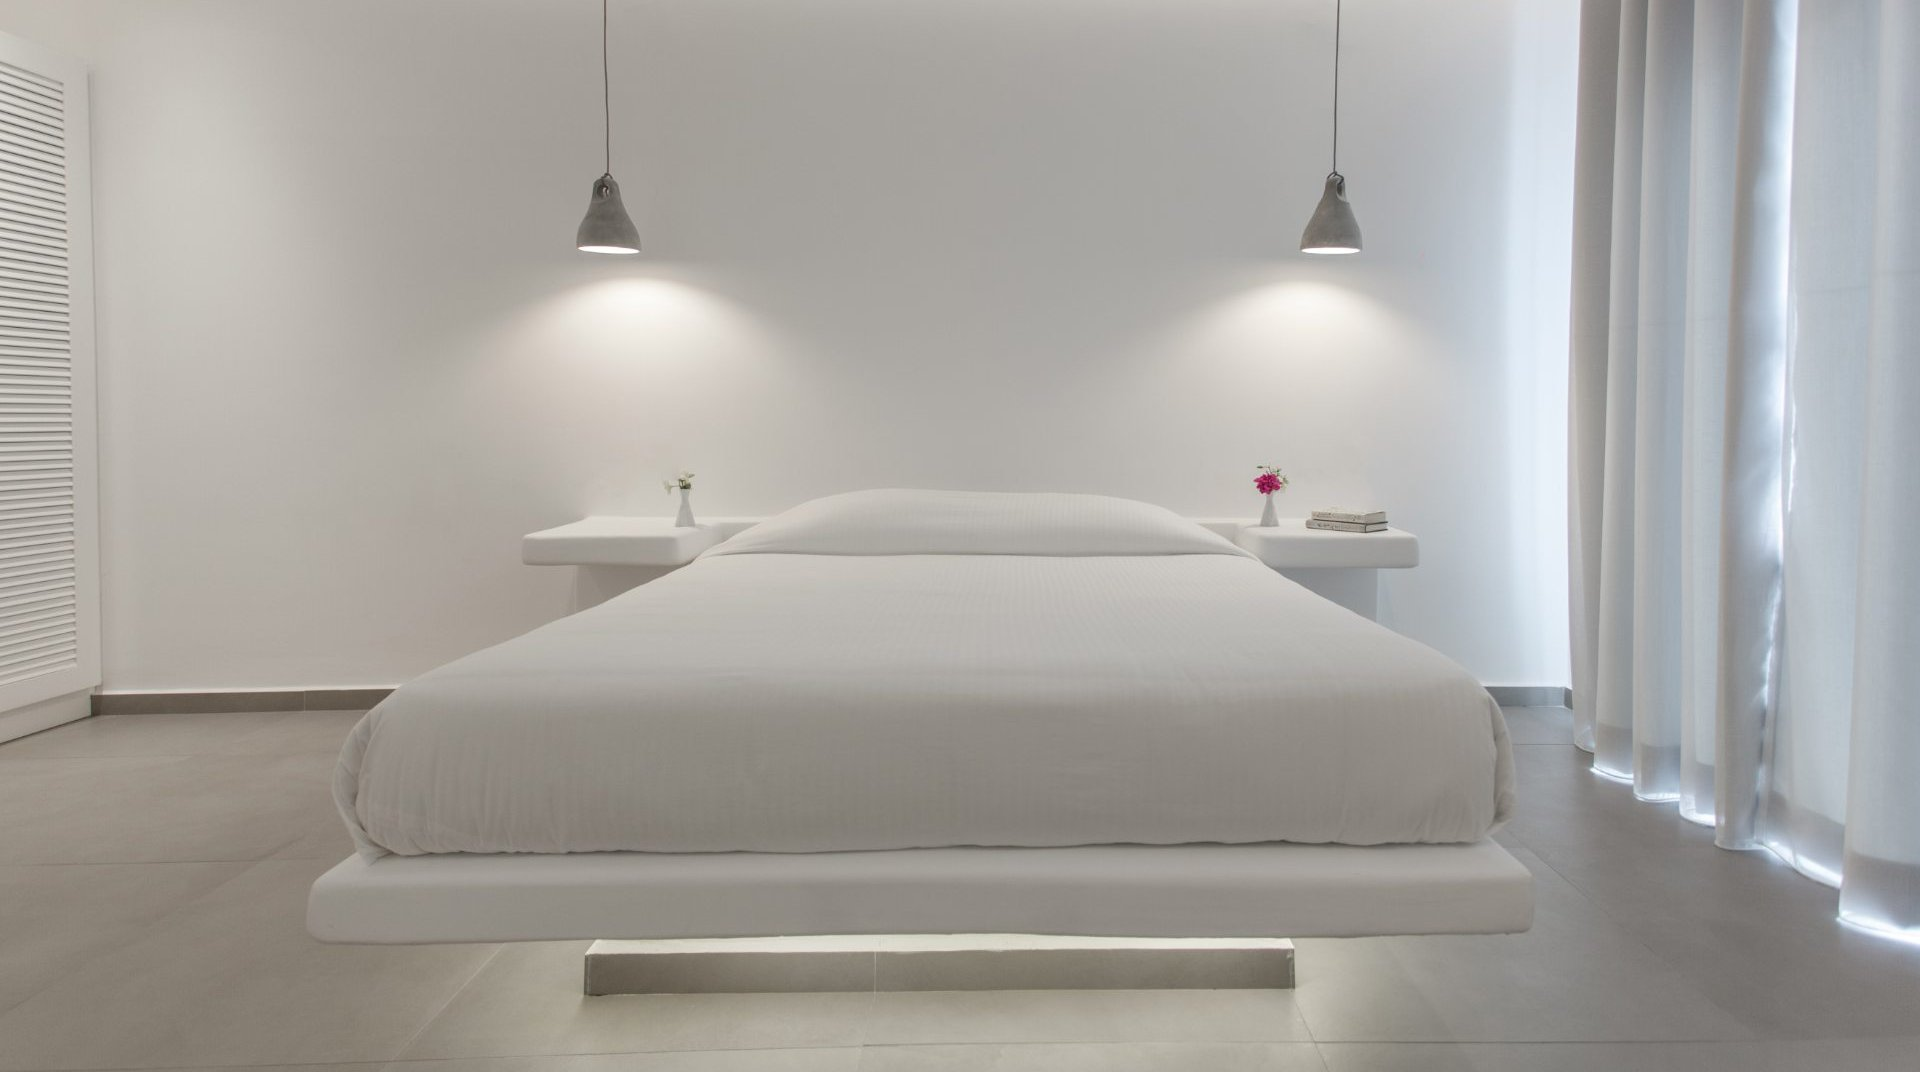 The interior of the suite with the bed, the modern bedside tables and the closet